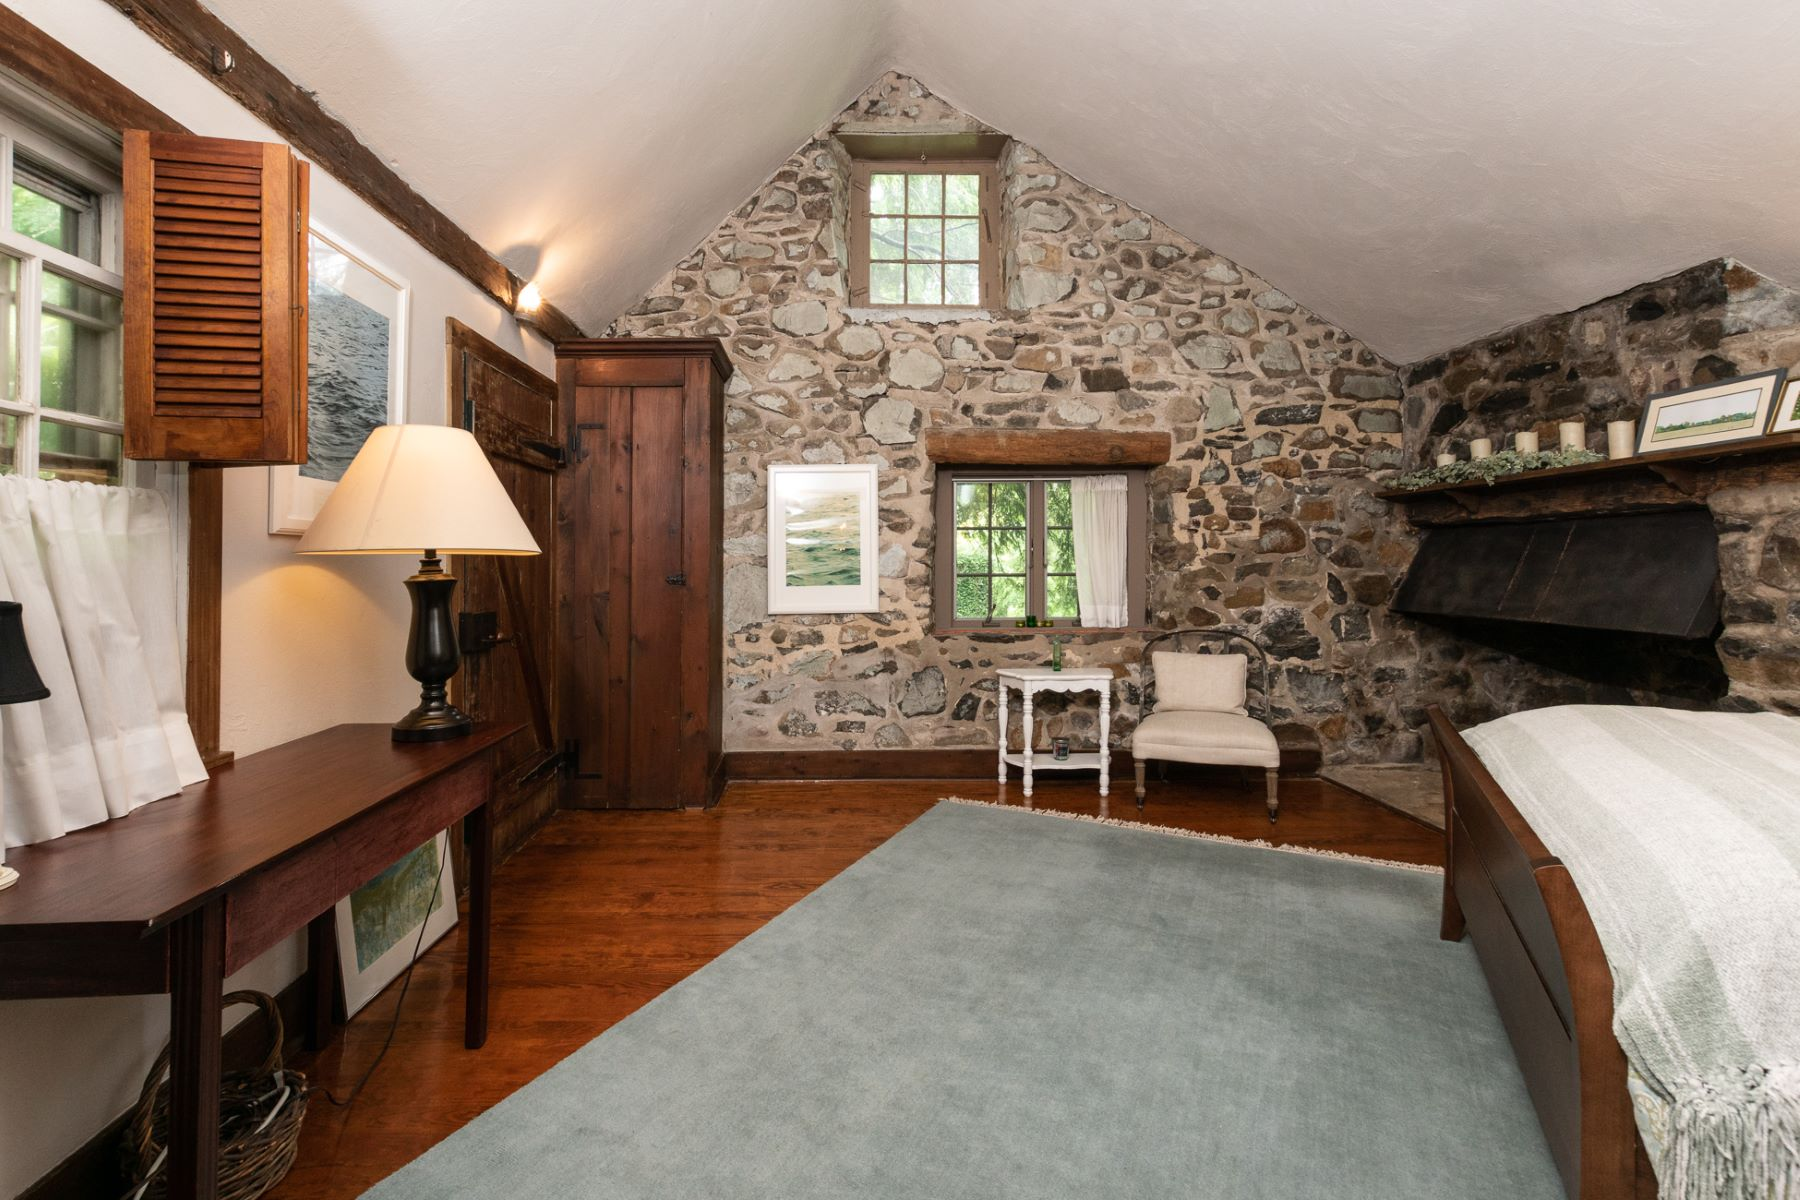 Additional photo for property listing at Amazing Converted Barn for Rent 5736 Stoney Hill Road Barn, New Hope, Pennsylvania 18938 United States